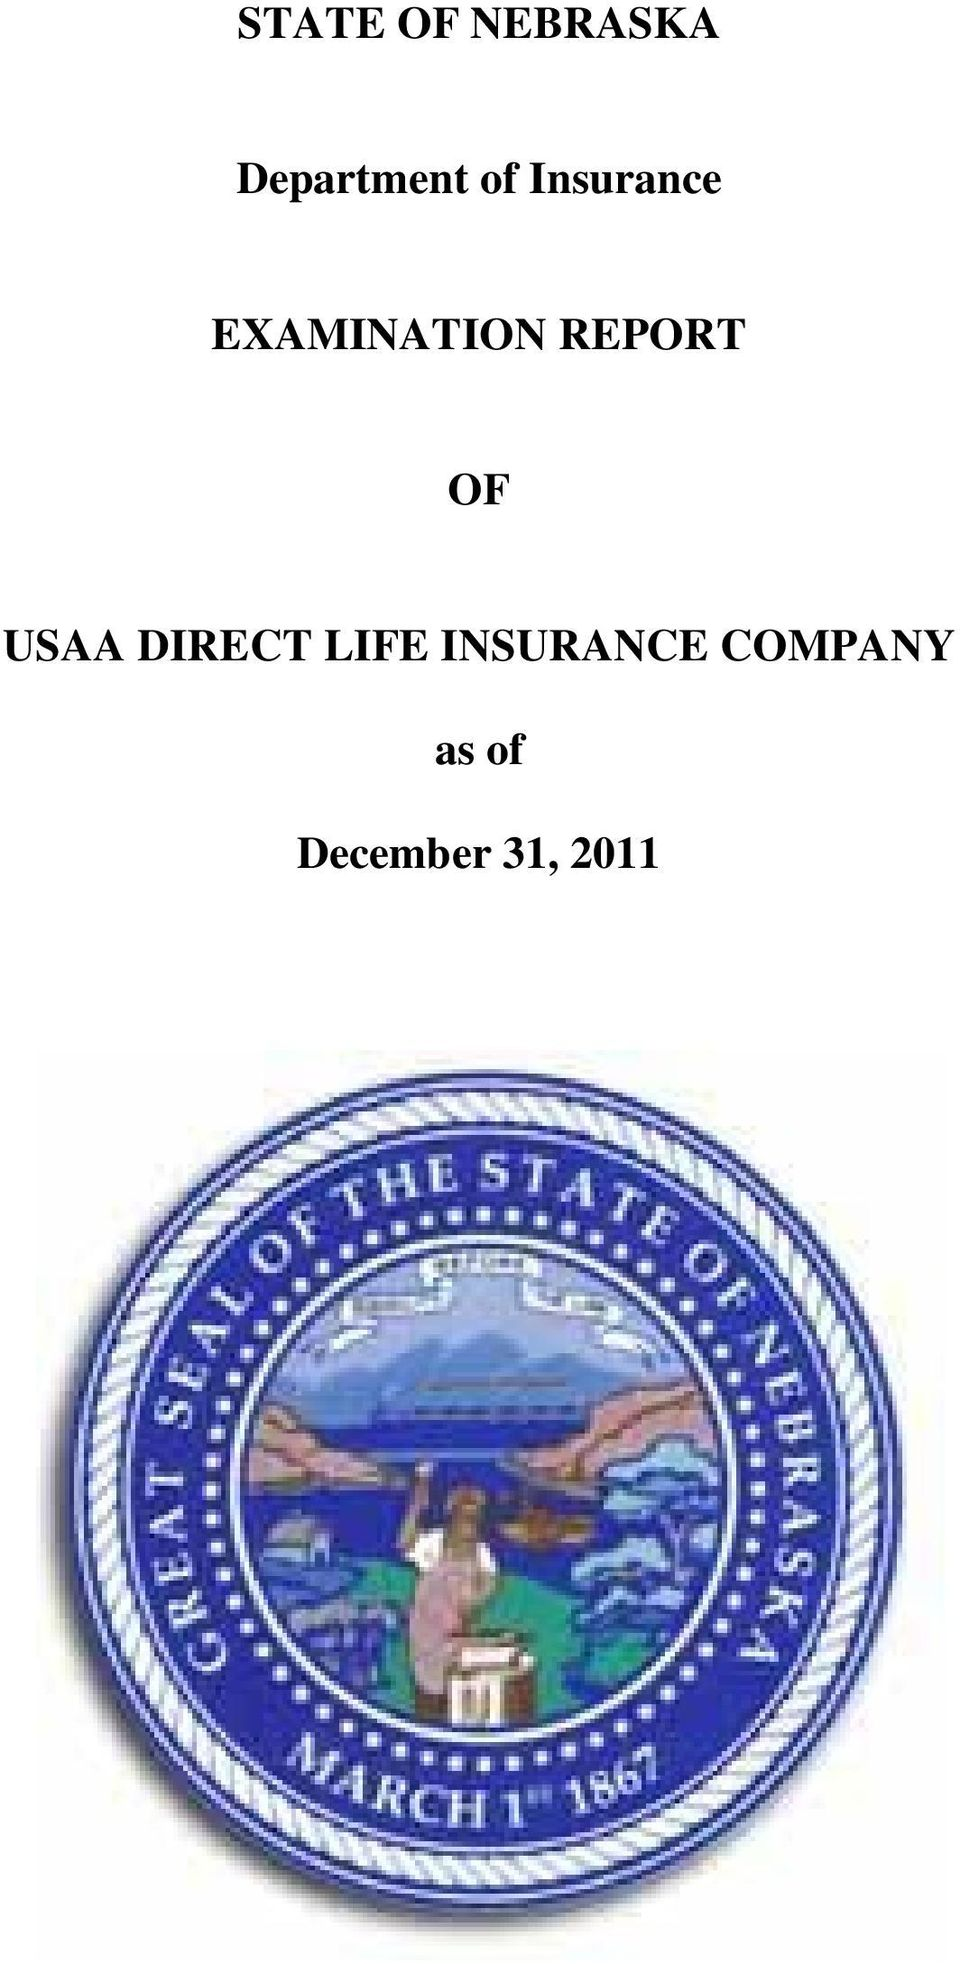 REPORT OF USAA DIRECT LIFE